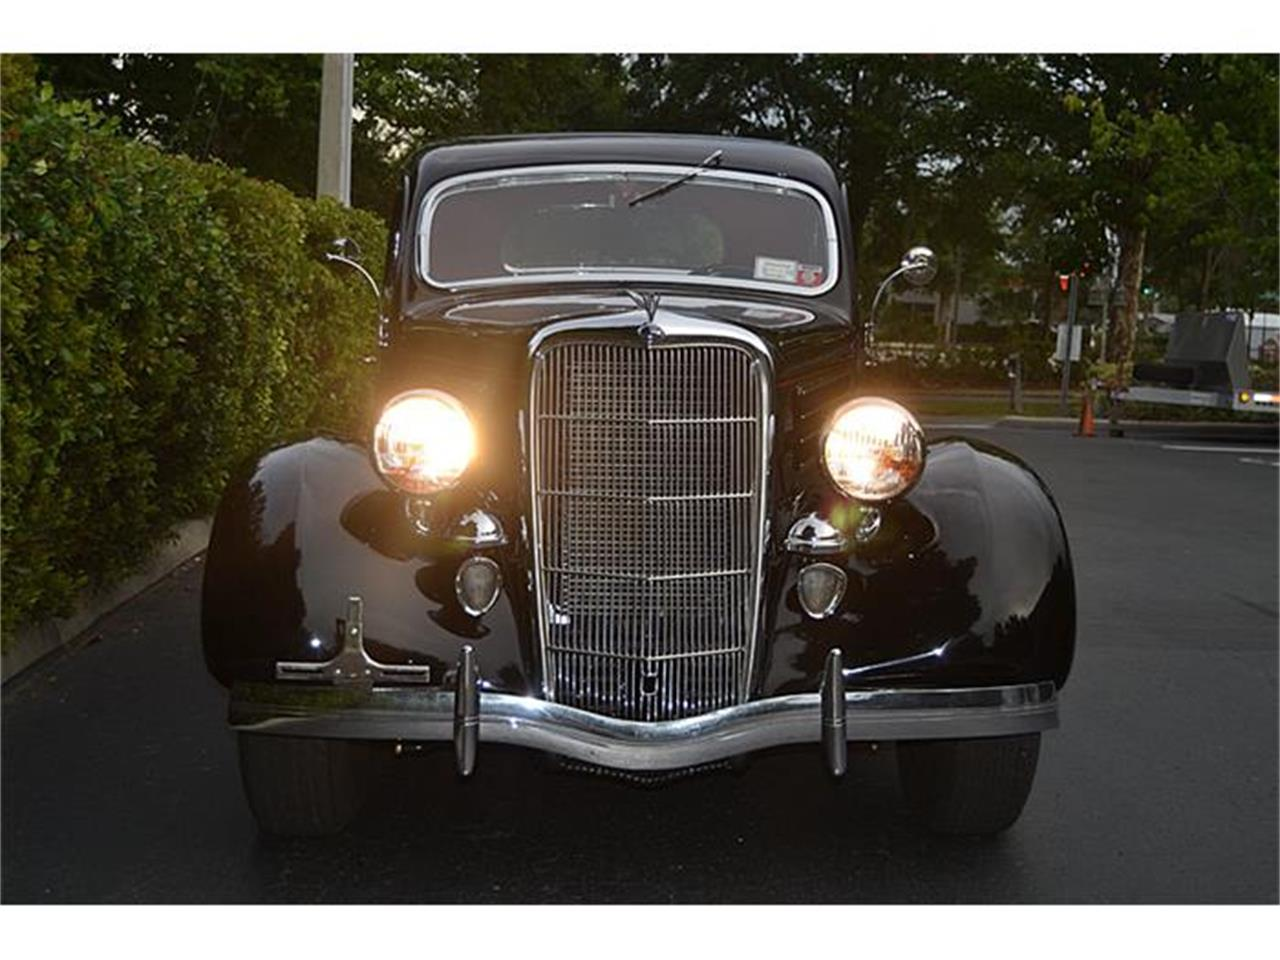 Orlando Ford Dealers >> 1935 Ford Model 48 for Sale | ClassicCars.com | CC-756506